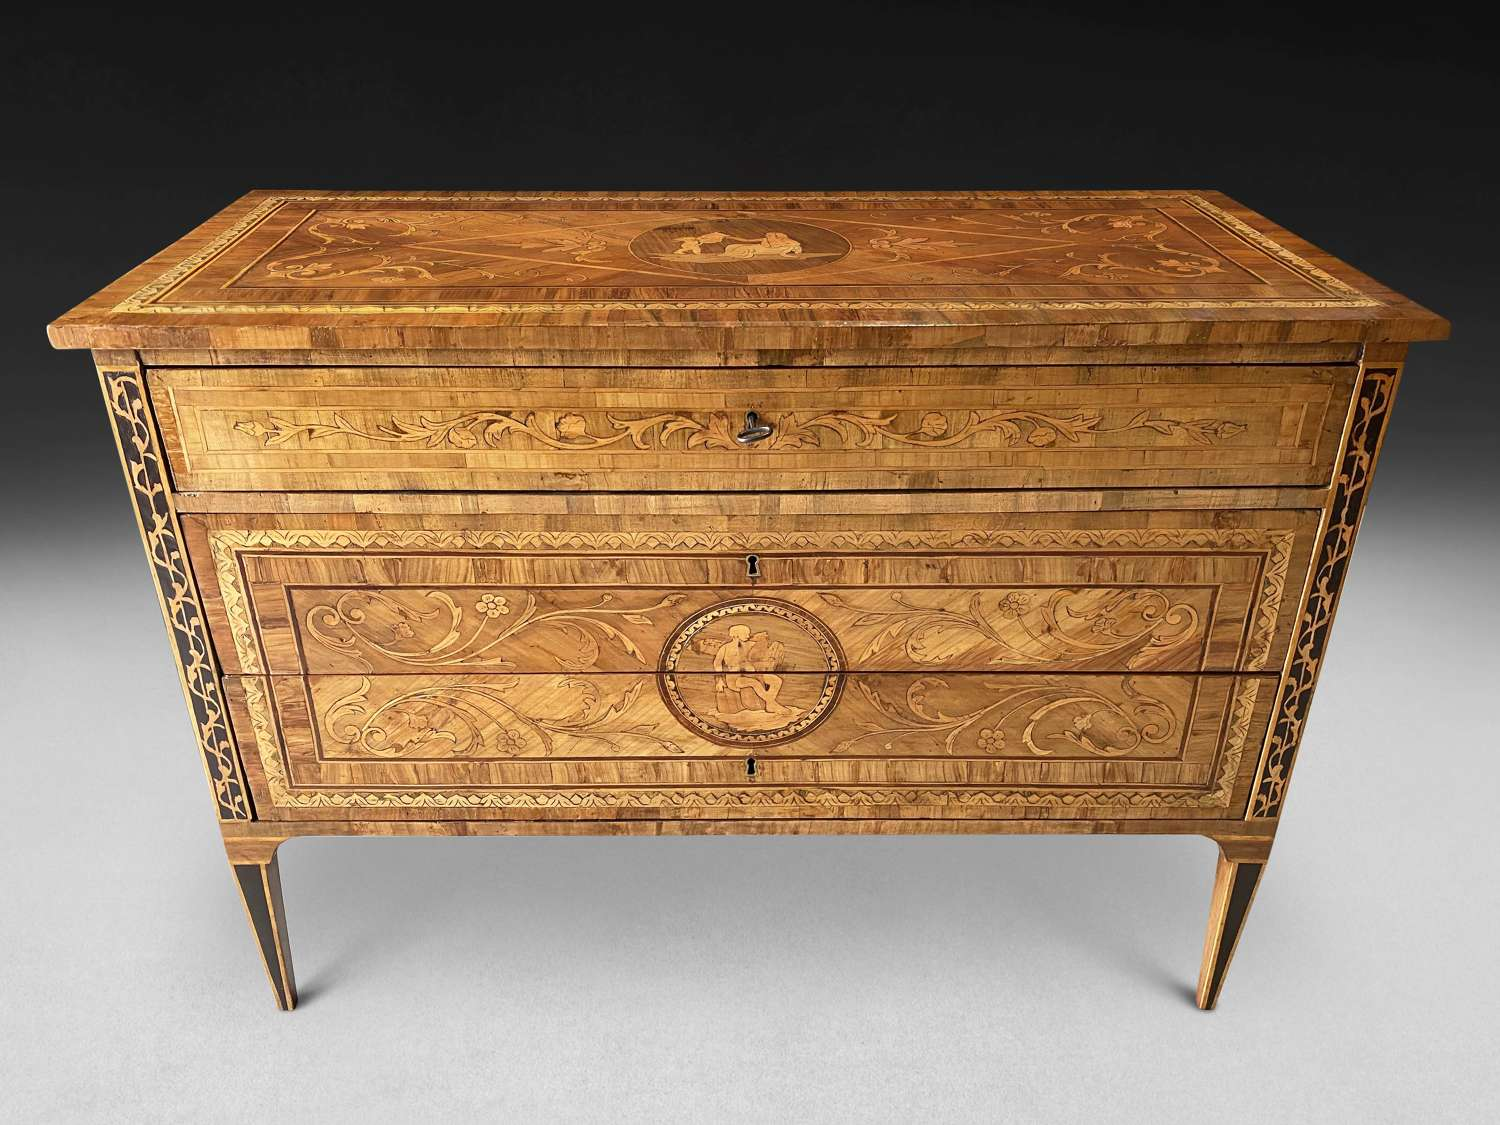 A GOOD MARQUETRY-INLAID COMMODE C 1780